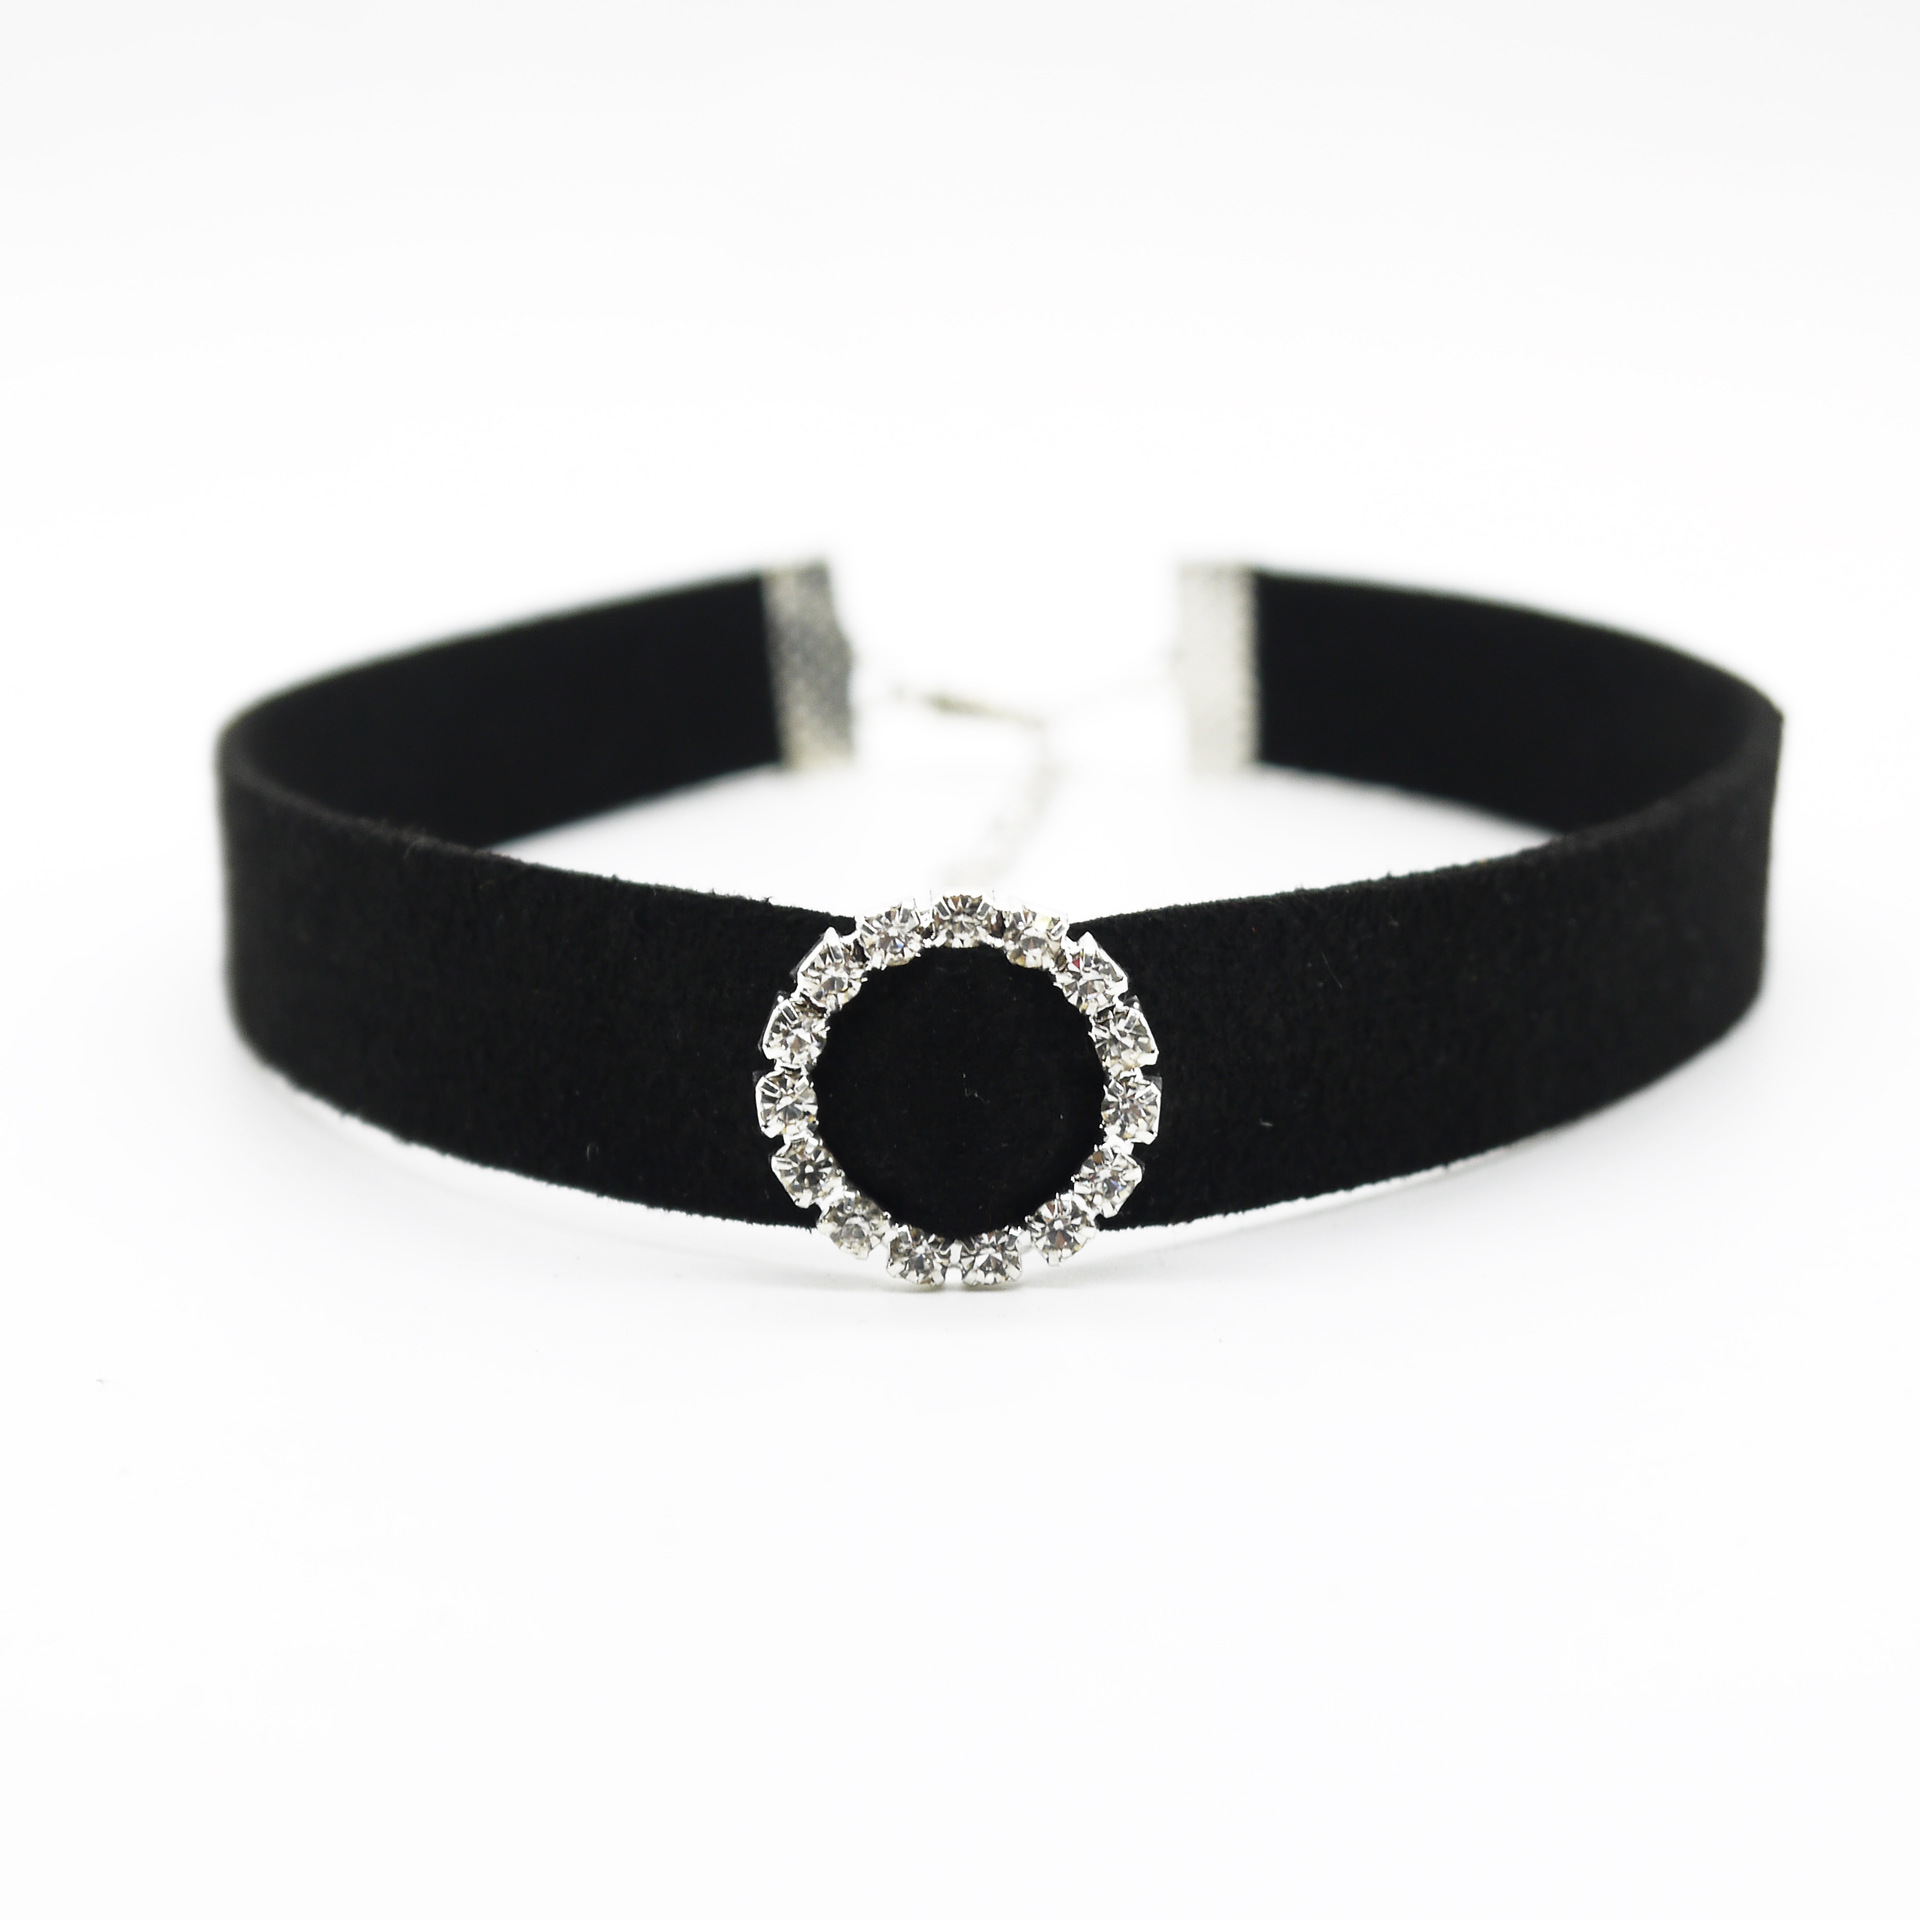 new design black velvet velvet choker necklace round crystal chockers chockers. Black Bedroom Furniture Sets. Home Design Ideas